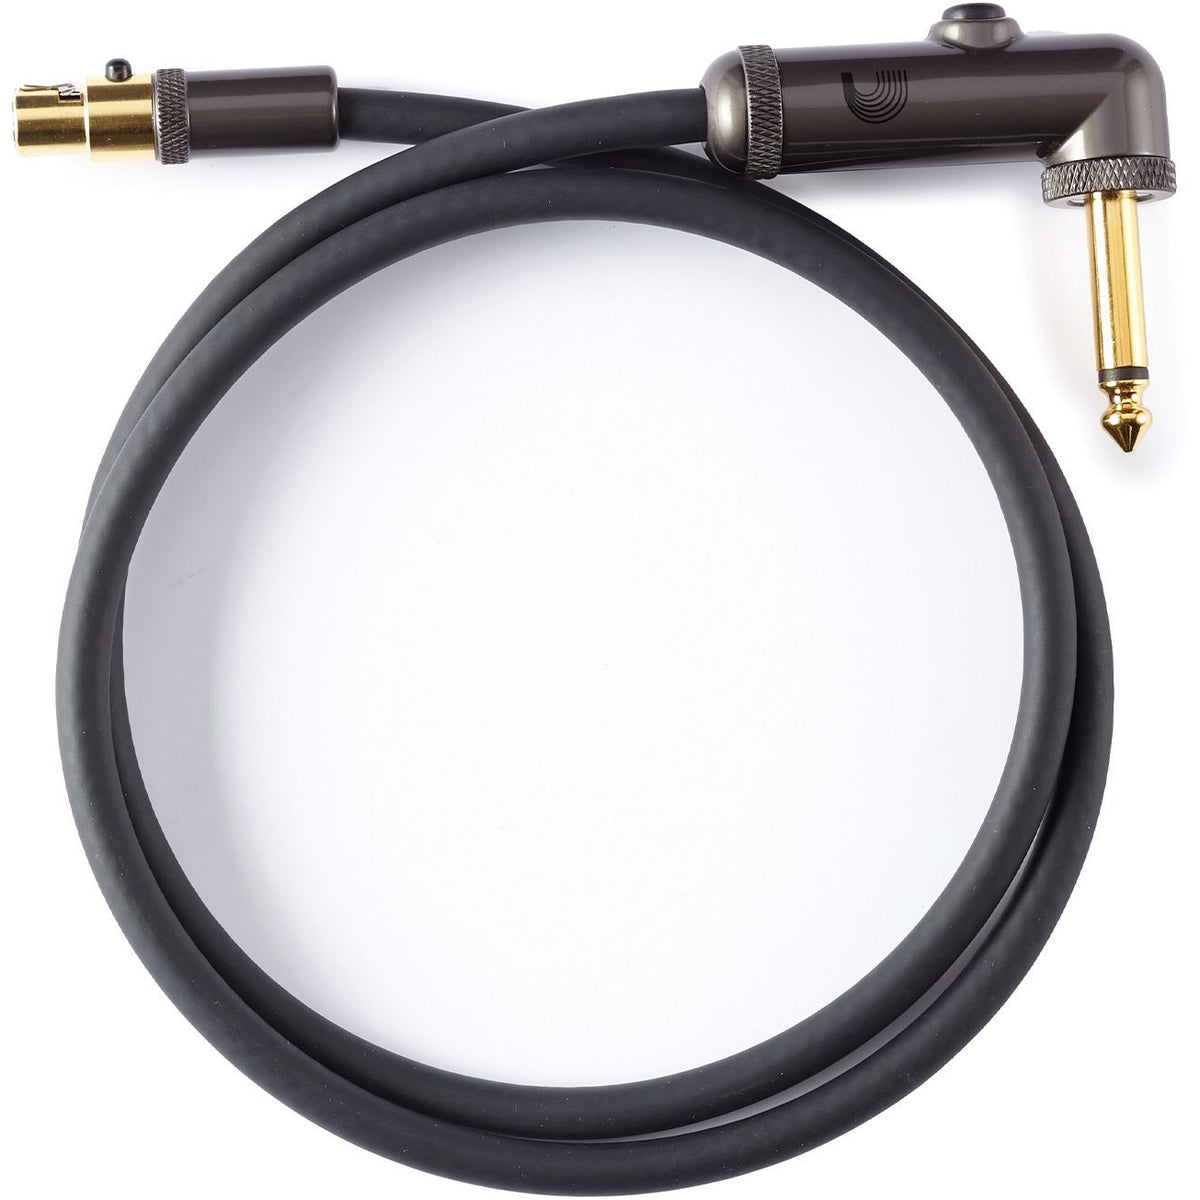 D'Addario PW-WGRA-02 Wireless Transmitter Cable